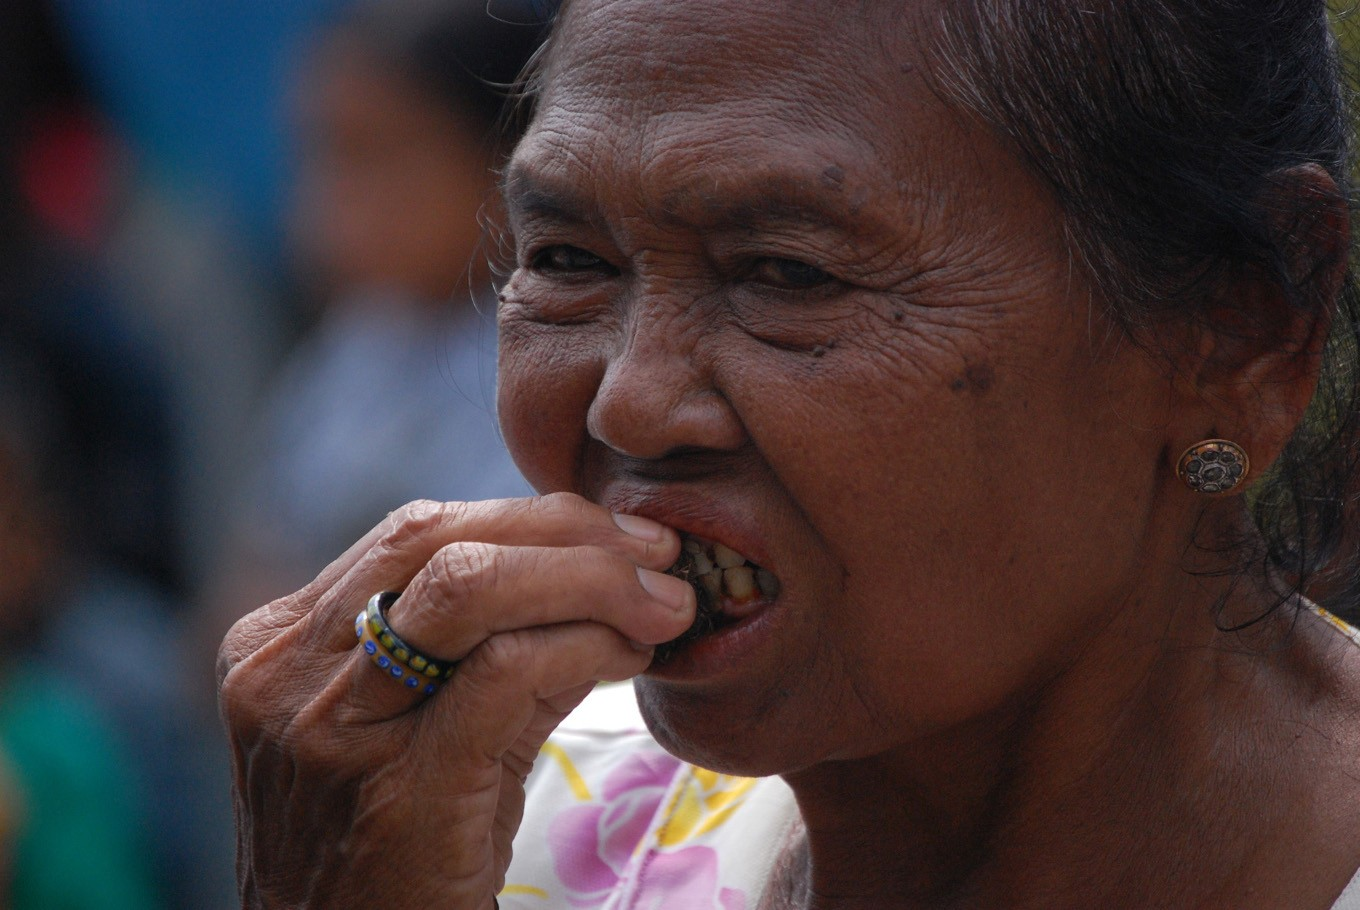 A woman is seen chewing 'kinang' at the gamelan performance in Kasunanan Palace in Surakarta on Friday.